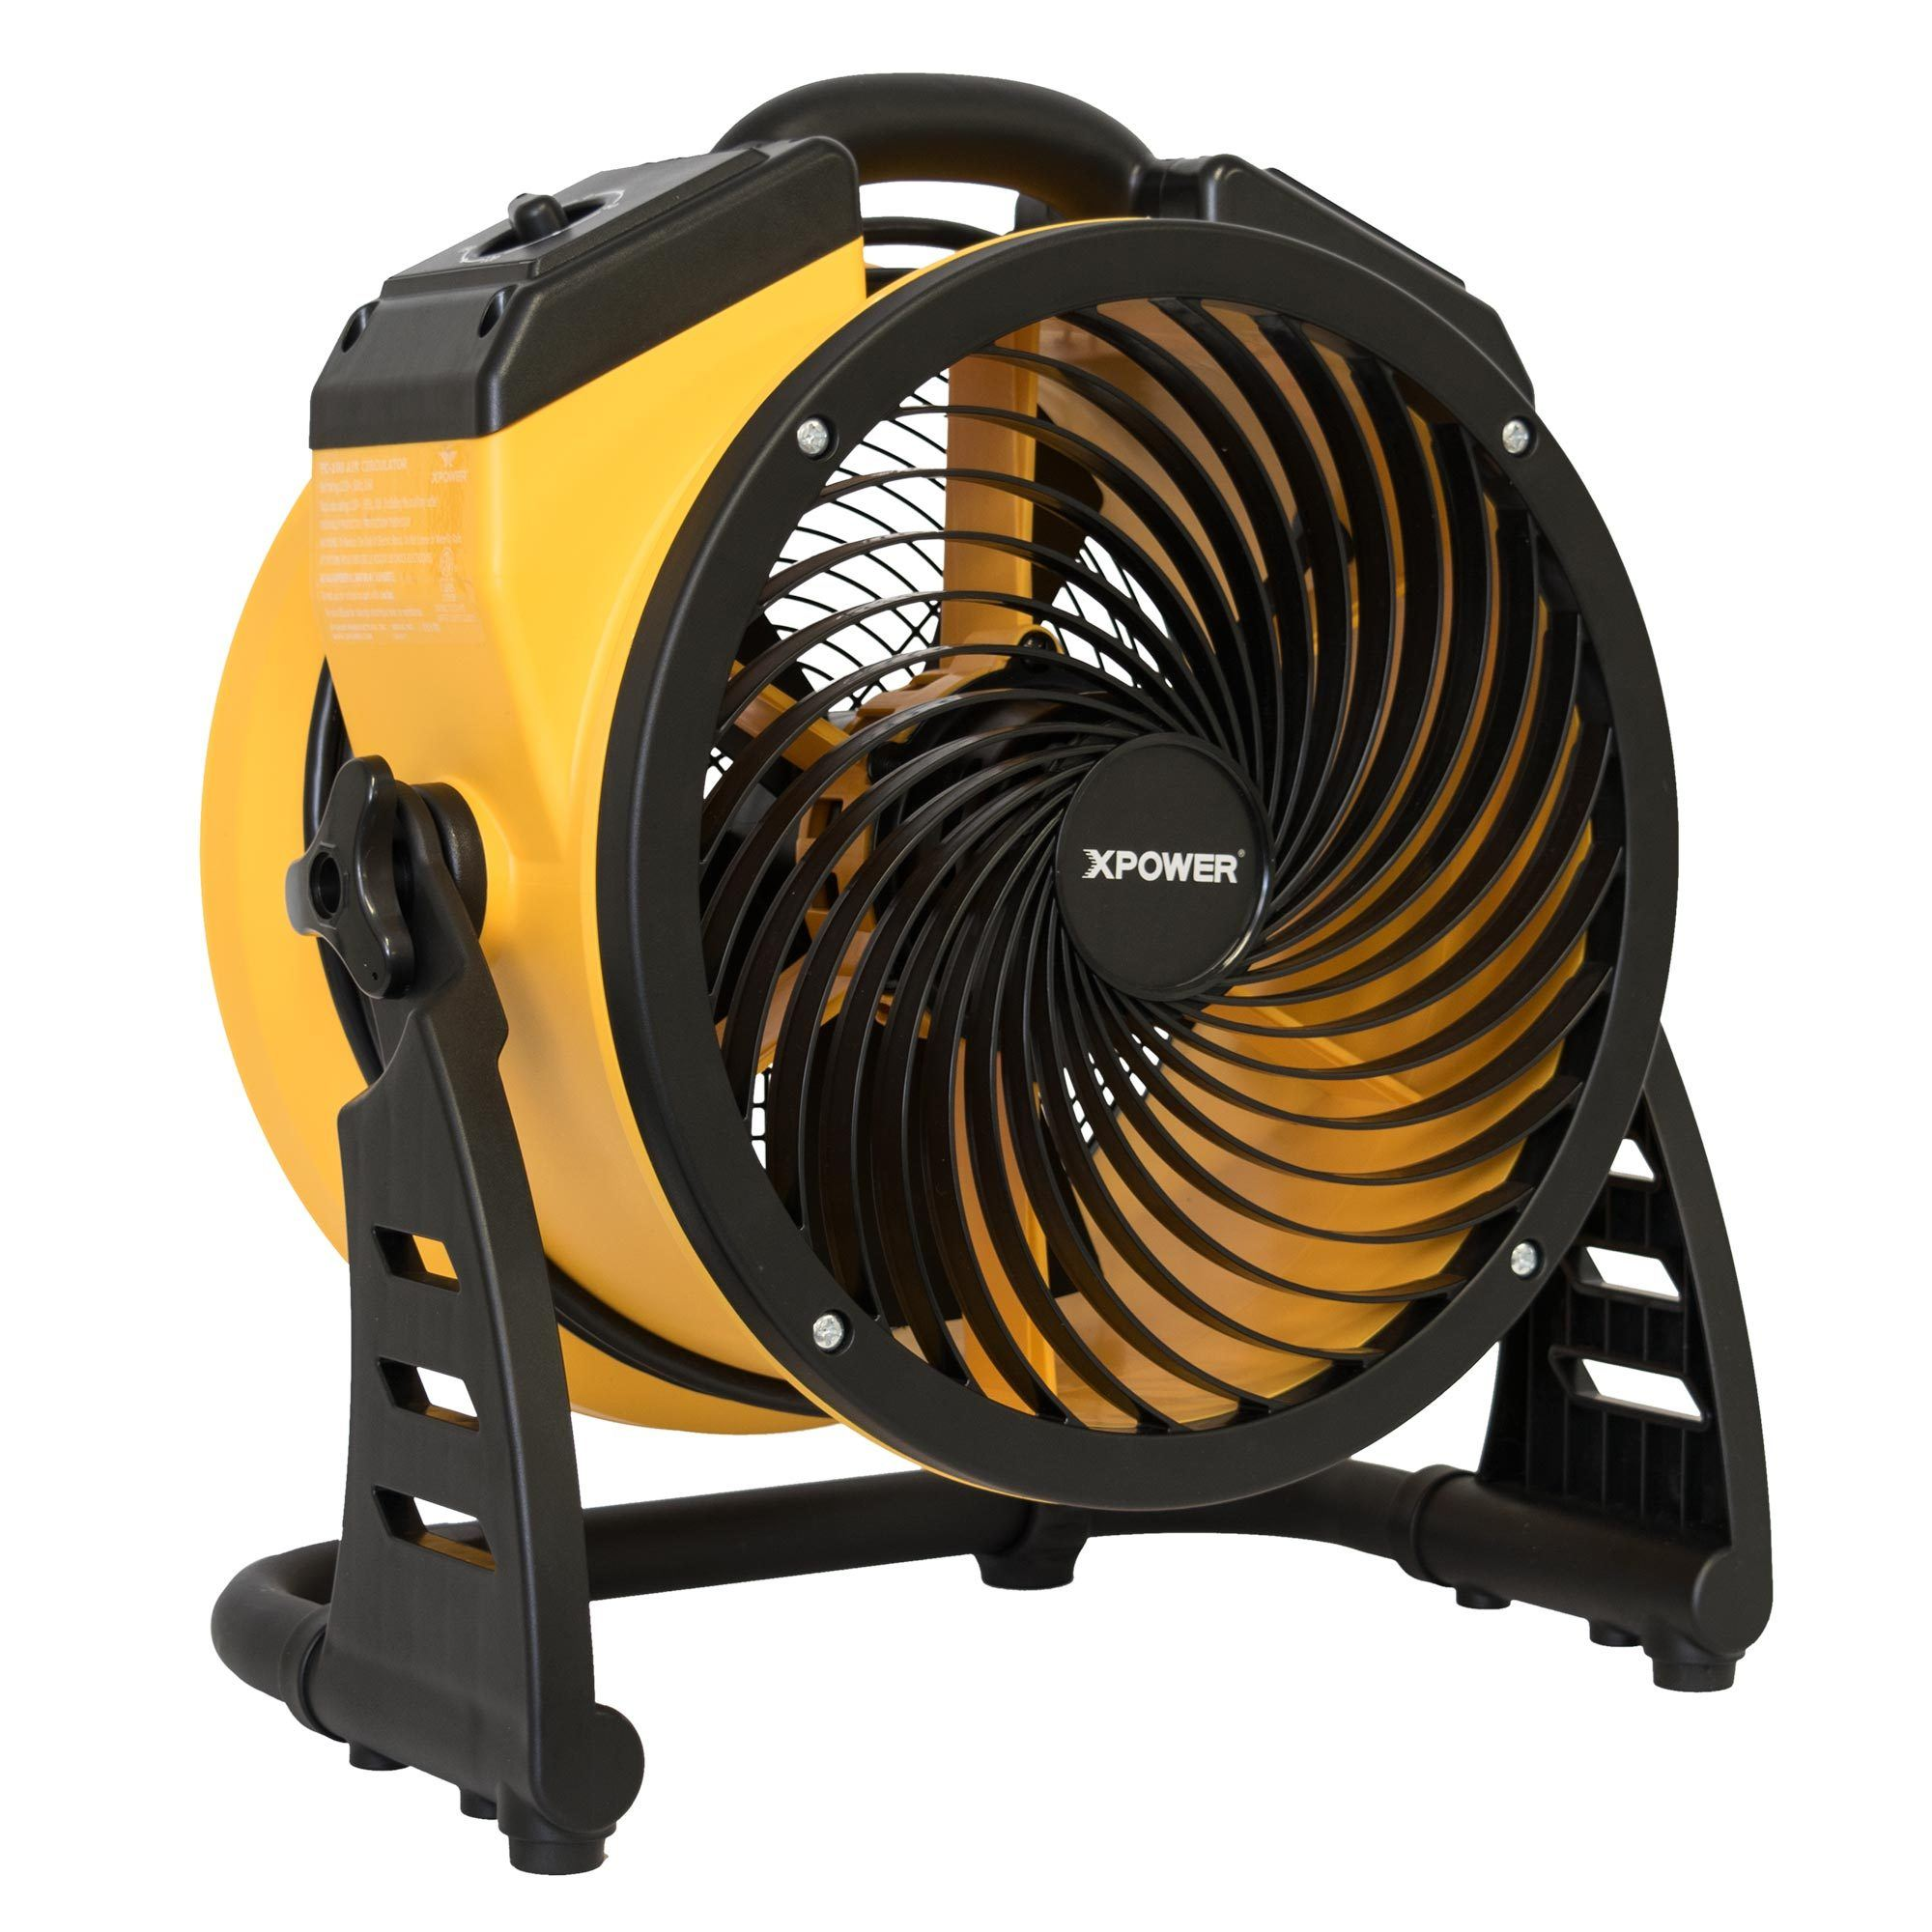 garages-workshops-utility-fans-and-blowers.jpg